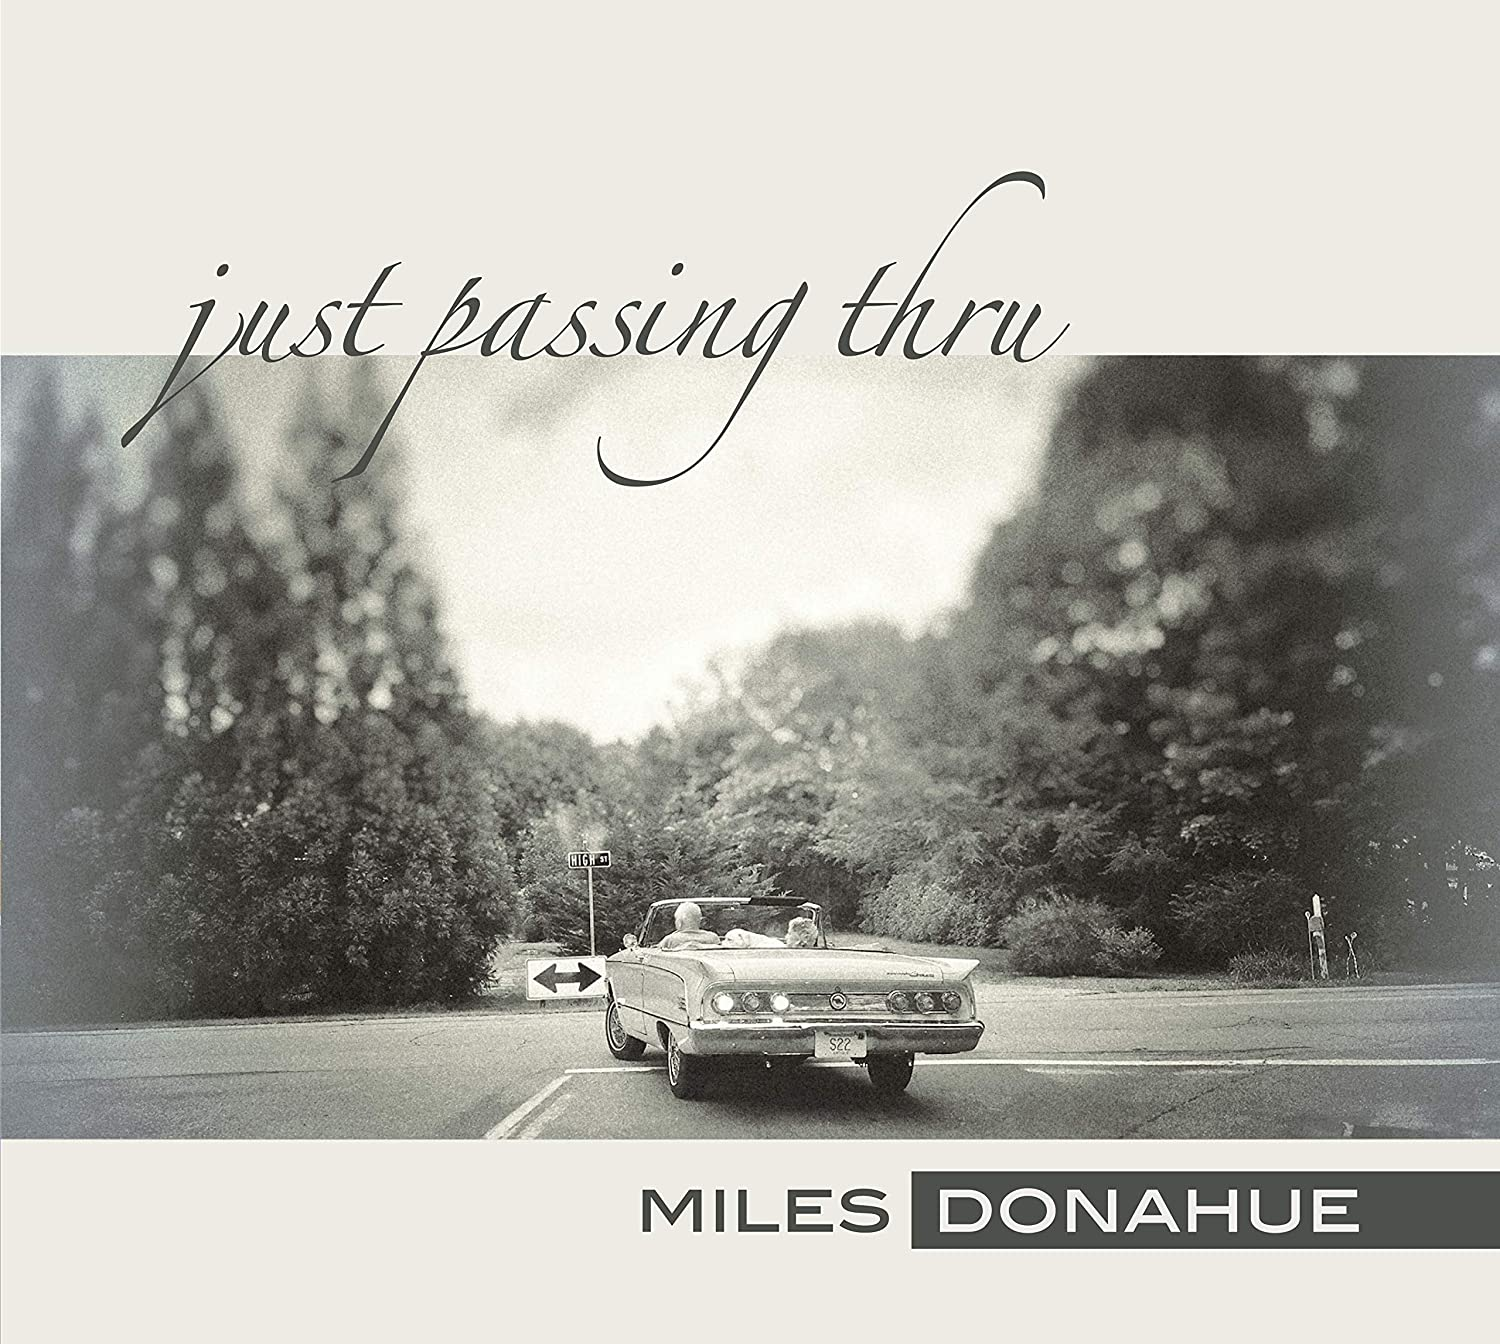 MILES DONAHUE - Just Passing Thru cover